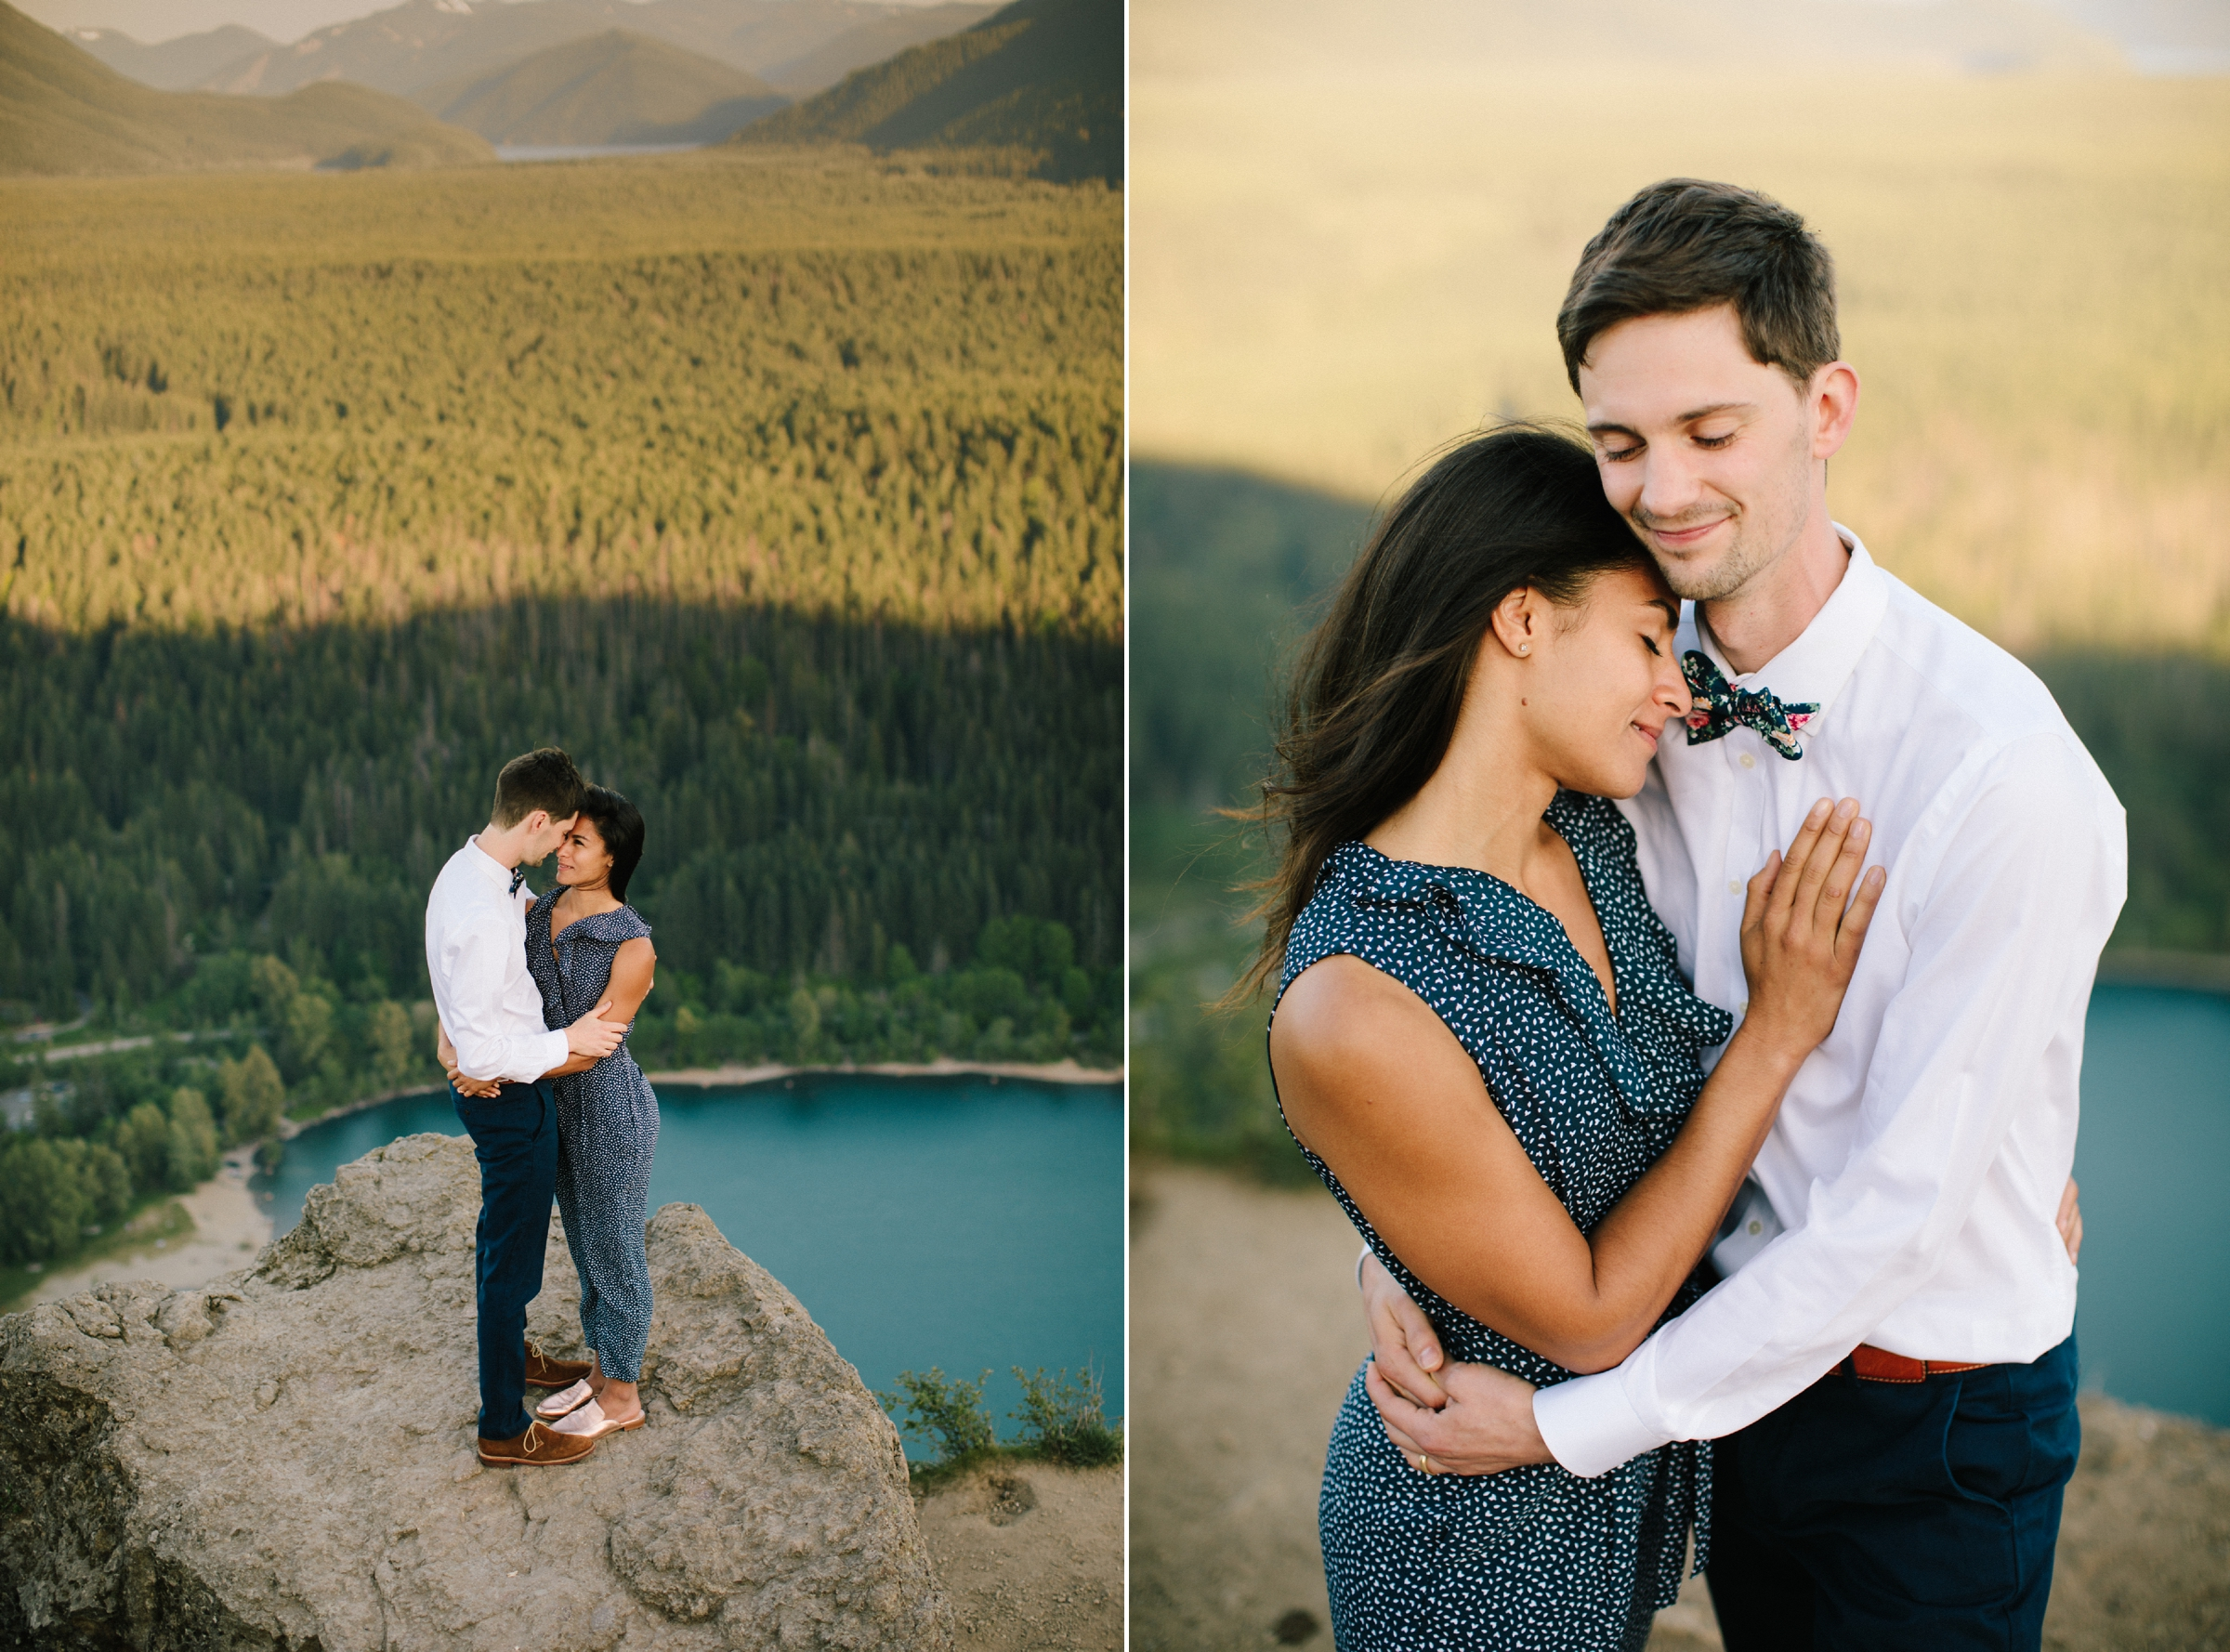 adventure-mountain-top-elopement-photographer-pnw-seattle-washington-wedding-engagement-hike-photography-catie-bergman_0004.jpg